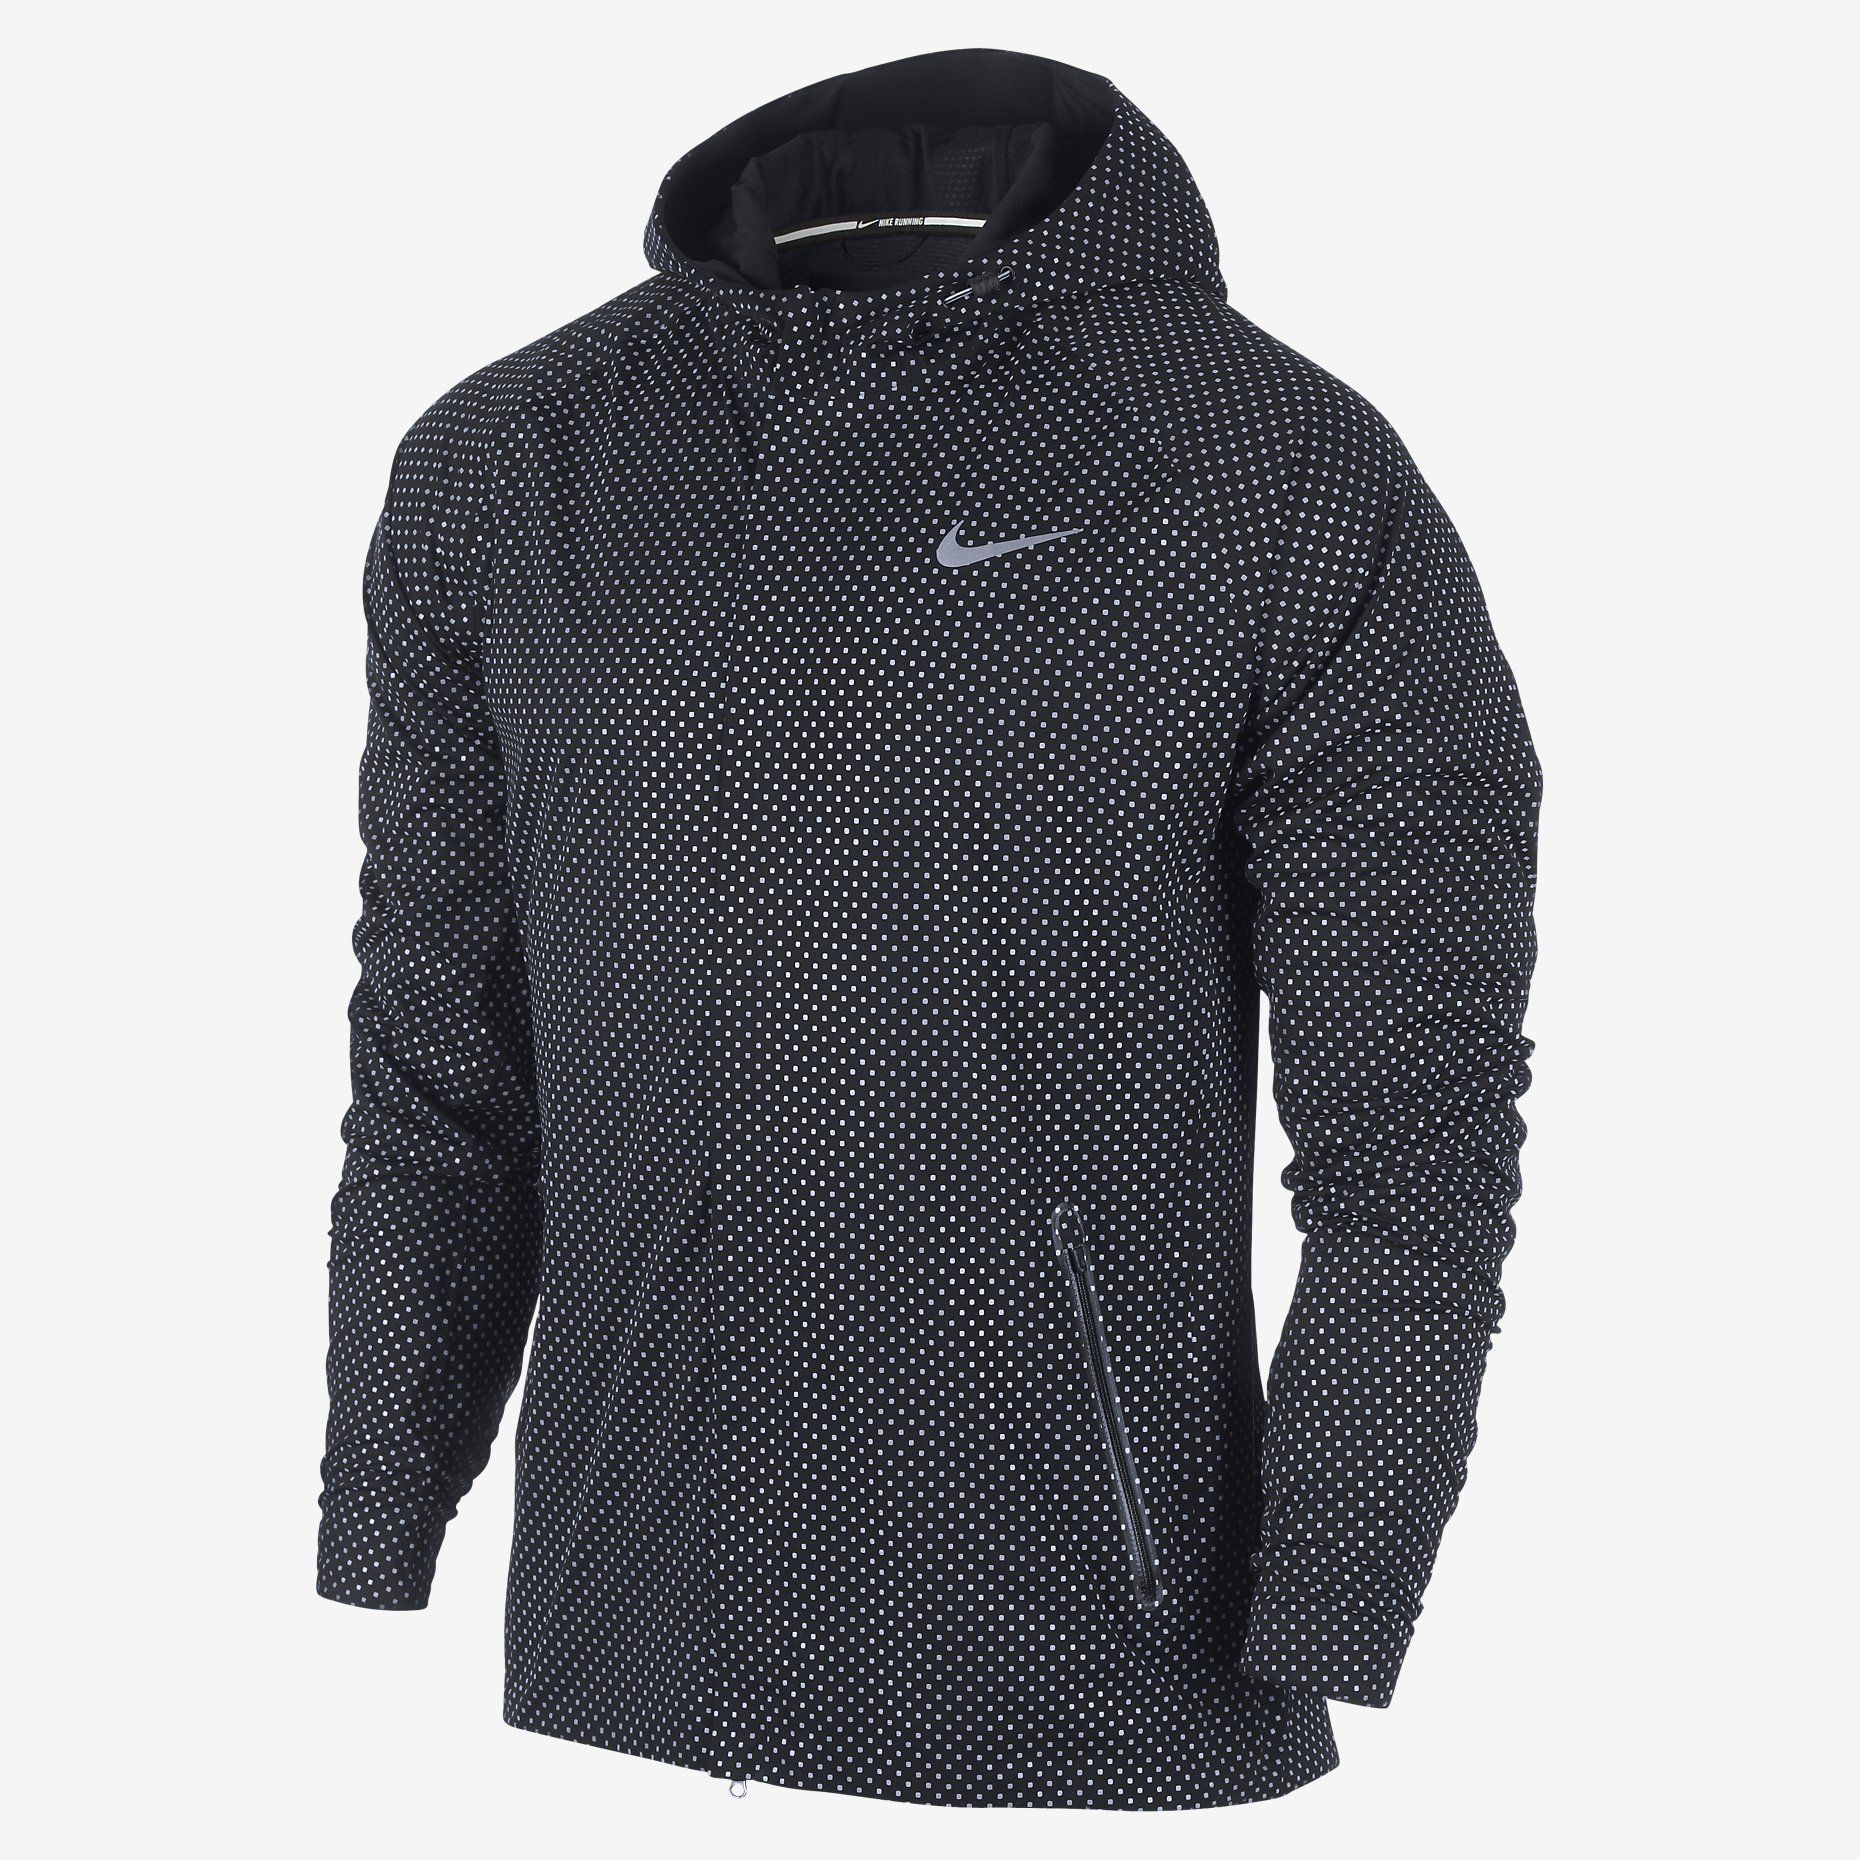 nike free run 2 reflective men's running jacket